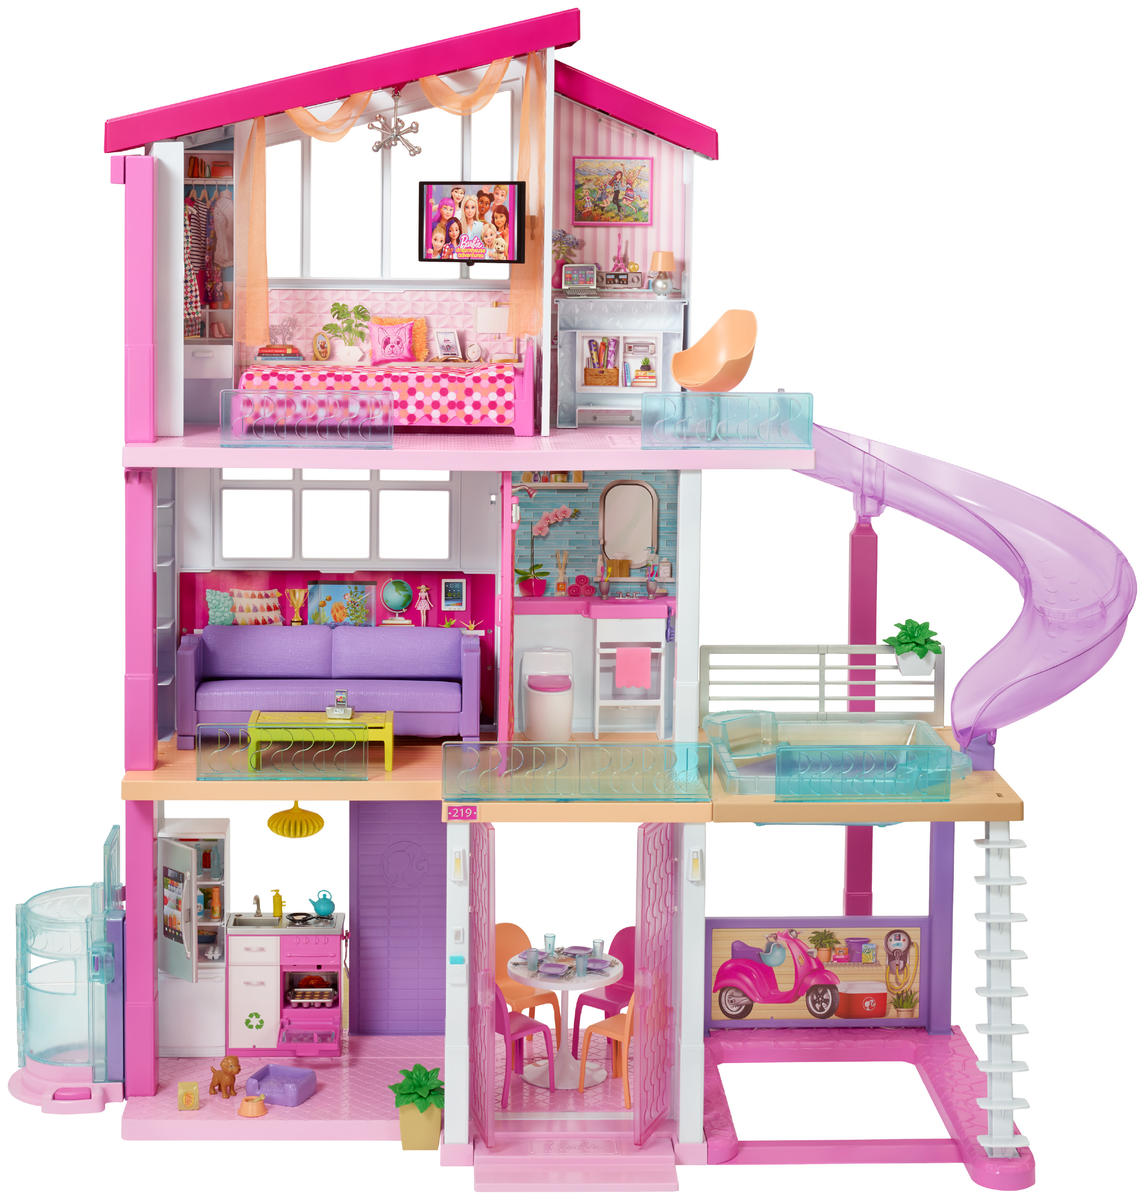 The 2018 Barbie Dreamhouse Would Be a Million-Dollar Listing for Sure